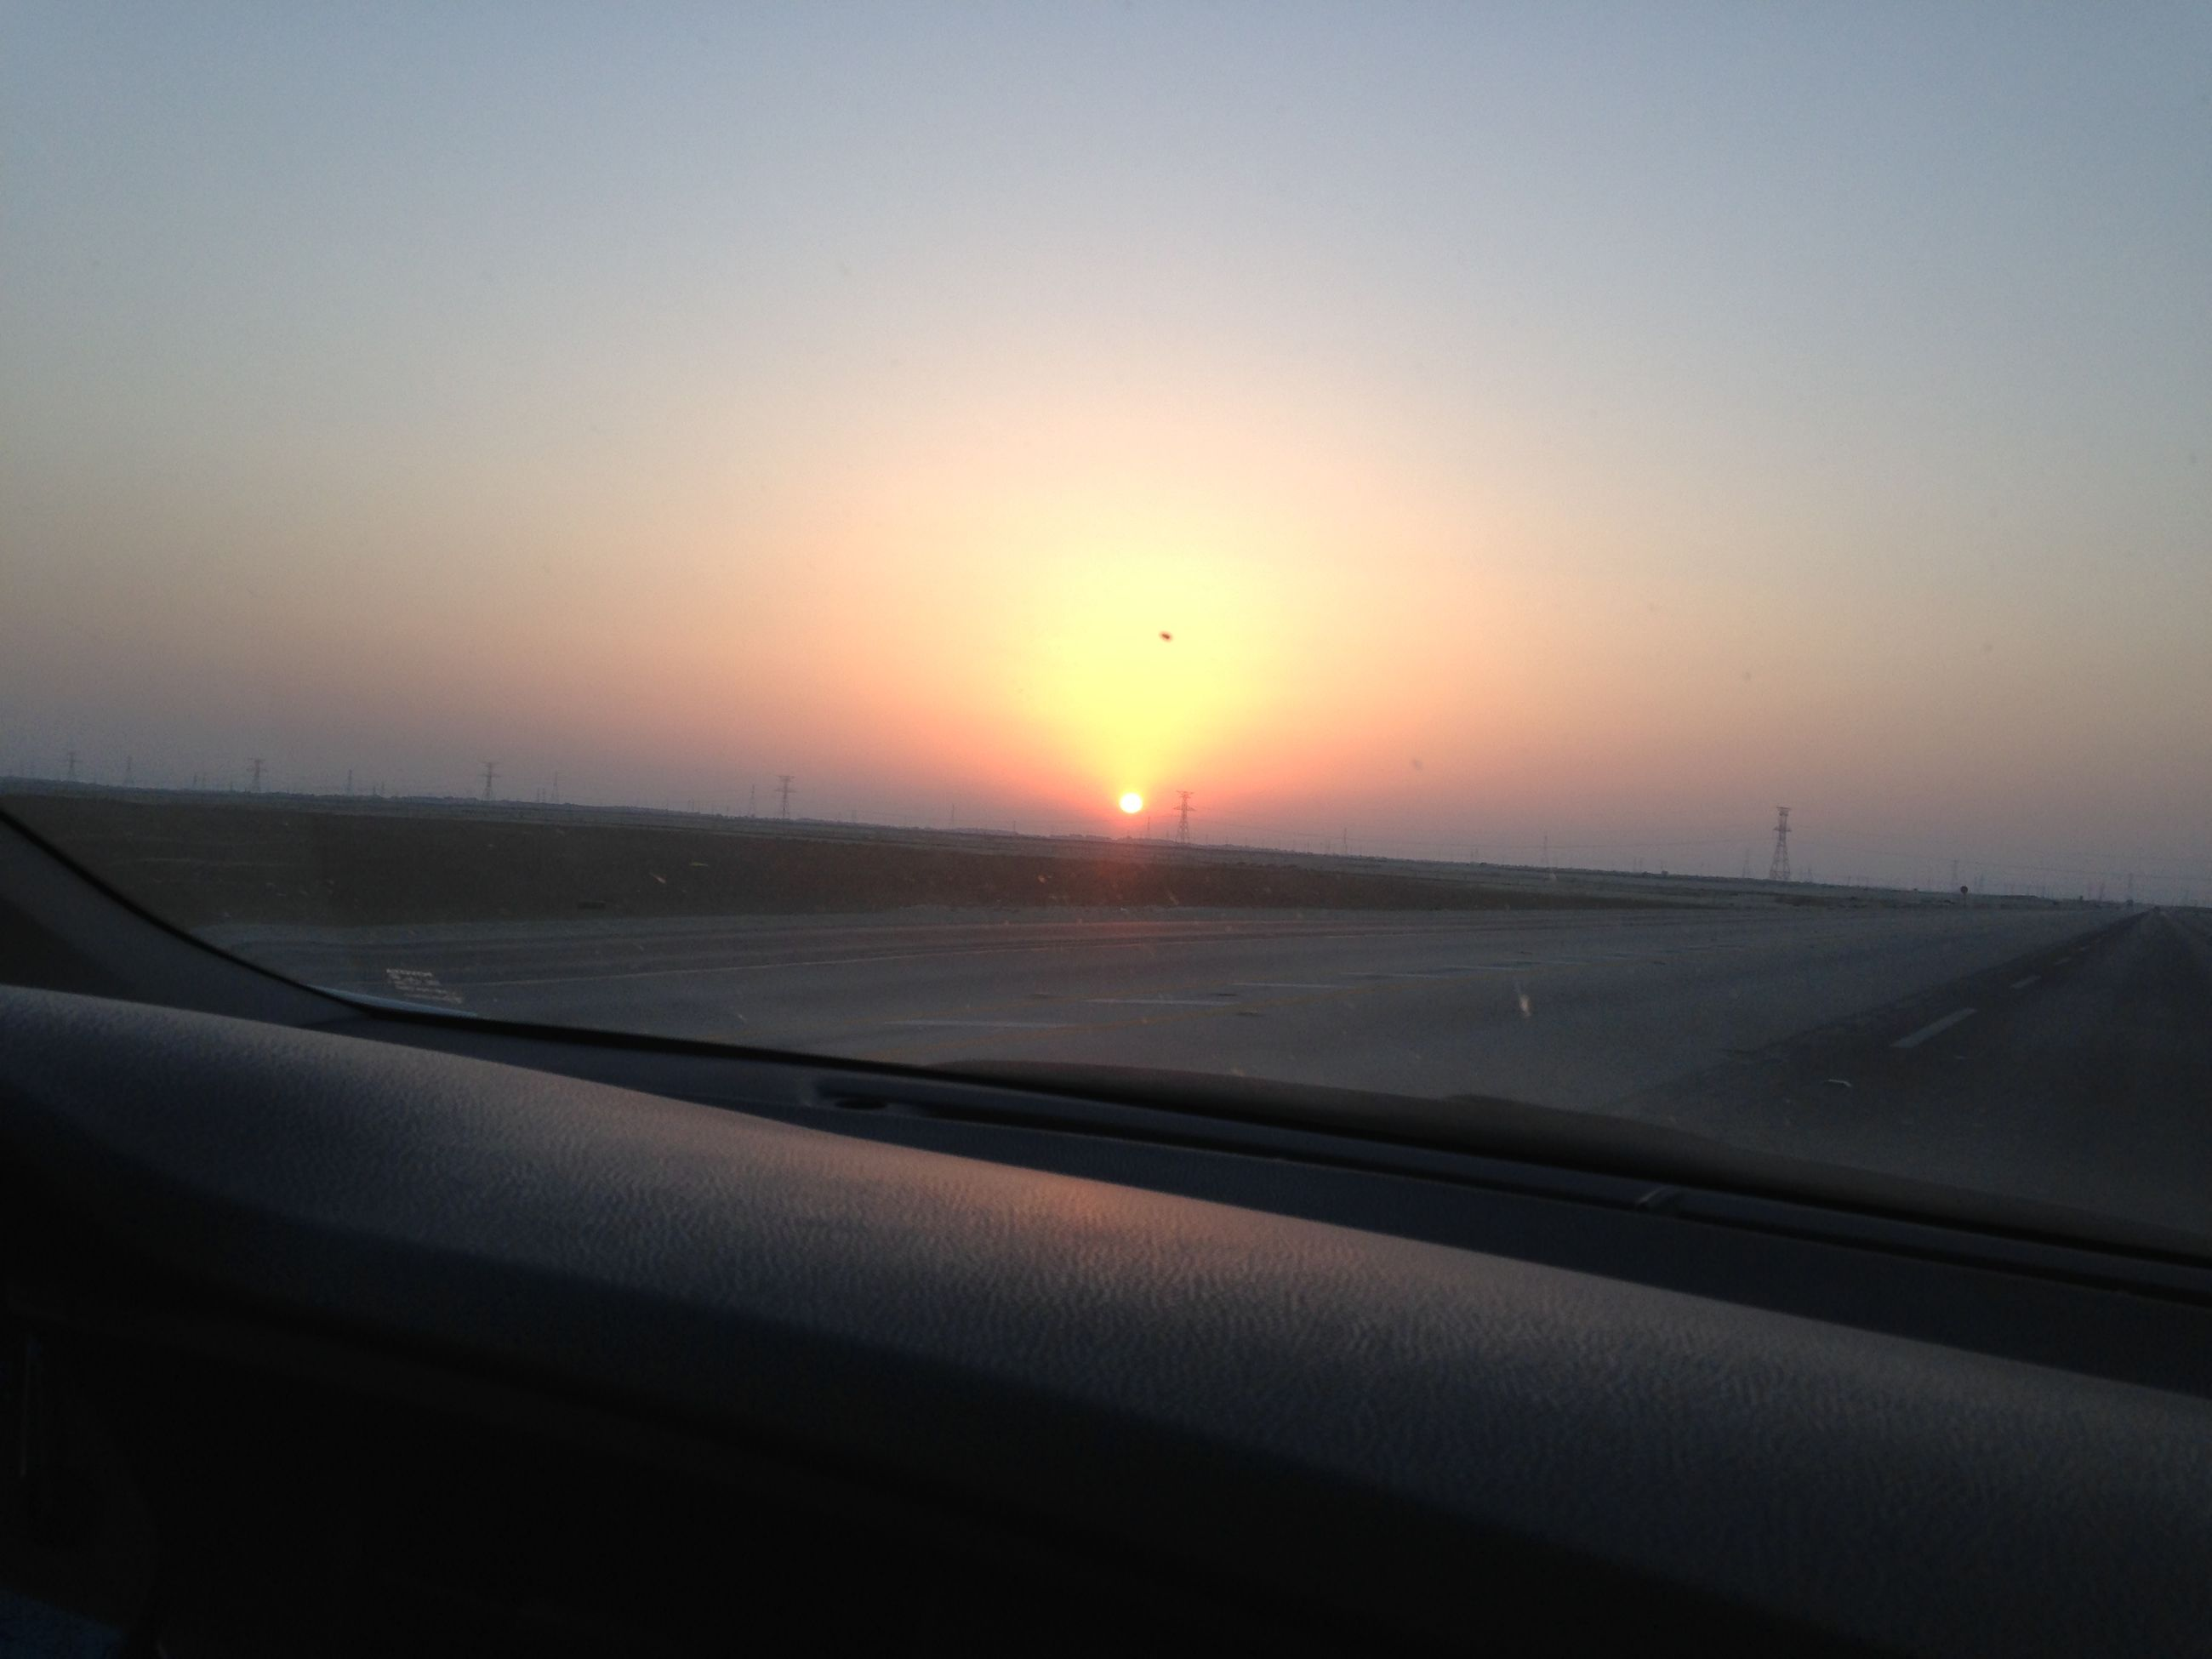 sunset, transportation, mode of transport, sun, orange color, vehicle interior, airplane, scenics, beauty in nature, clear sky, glass - material, travel, sky, car, window, transparent, nature, copy space, part of, land vehicle